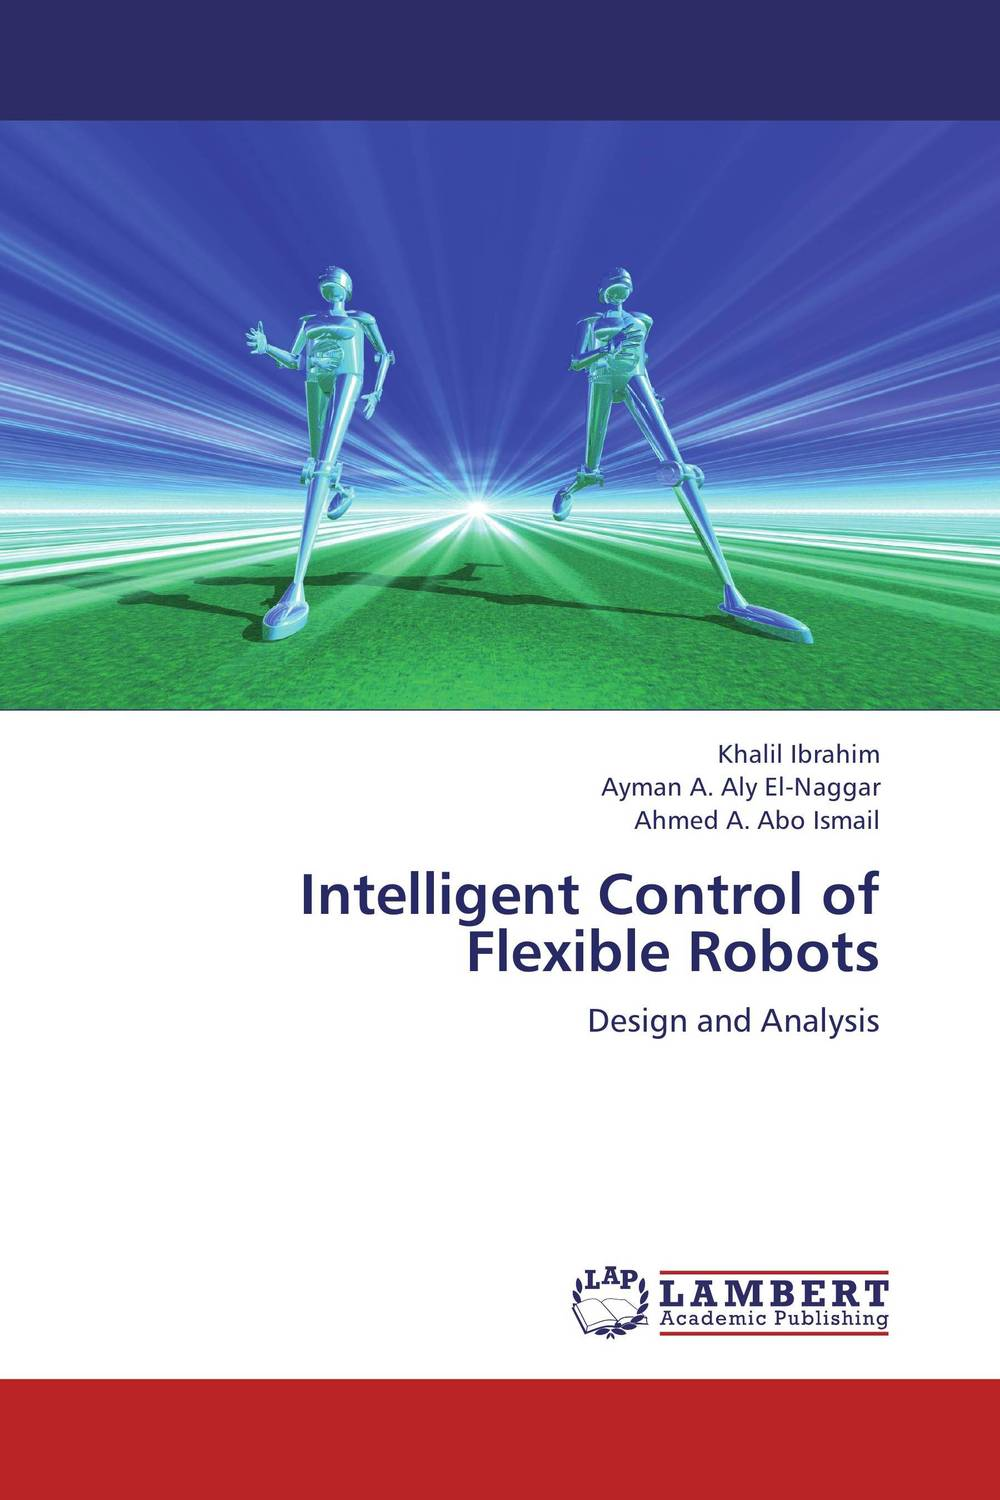 Intelligent Control of Flexible Robots khalil ibrahim ayman a aly el naggar and ahmed a abo ismail intelligent control of flexible robots